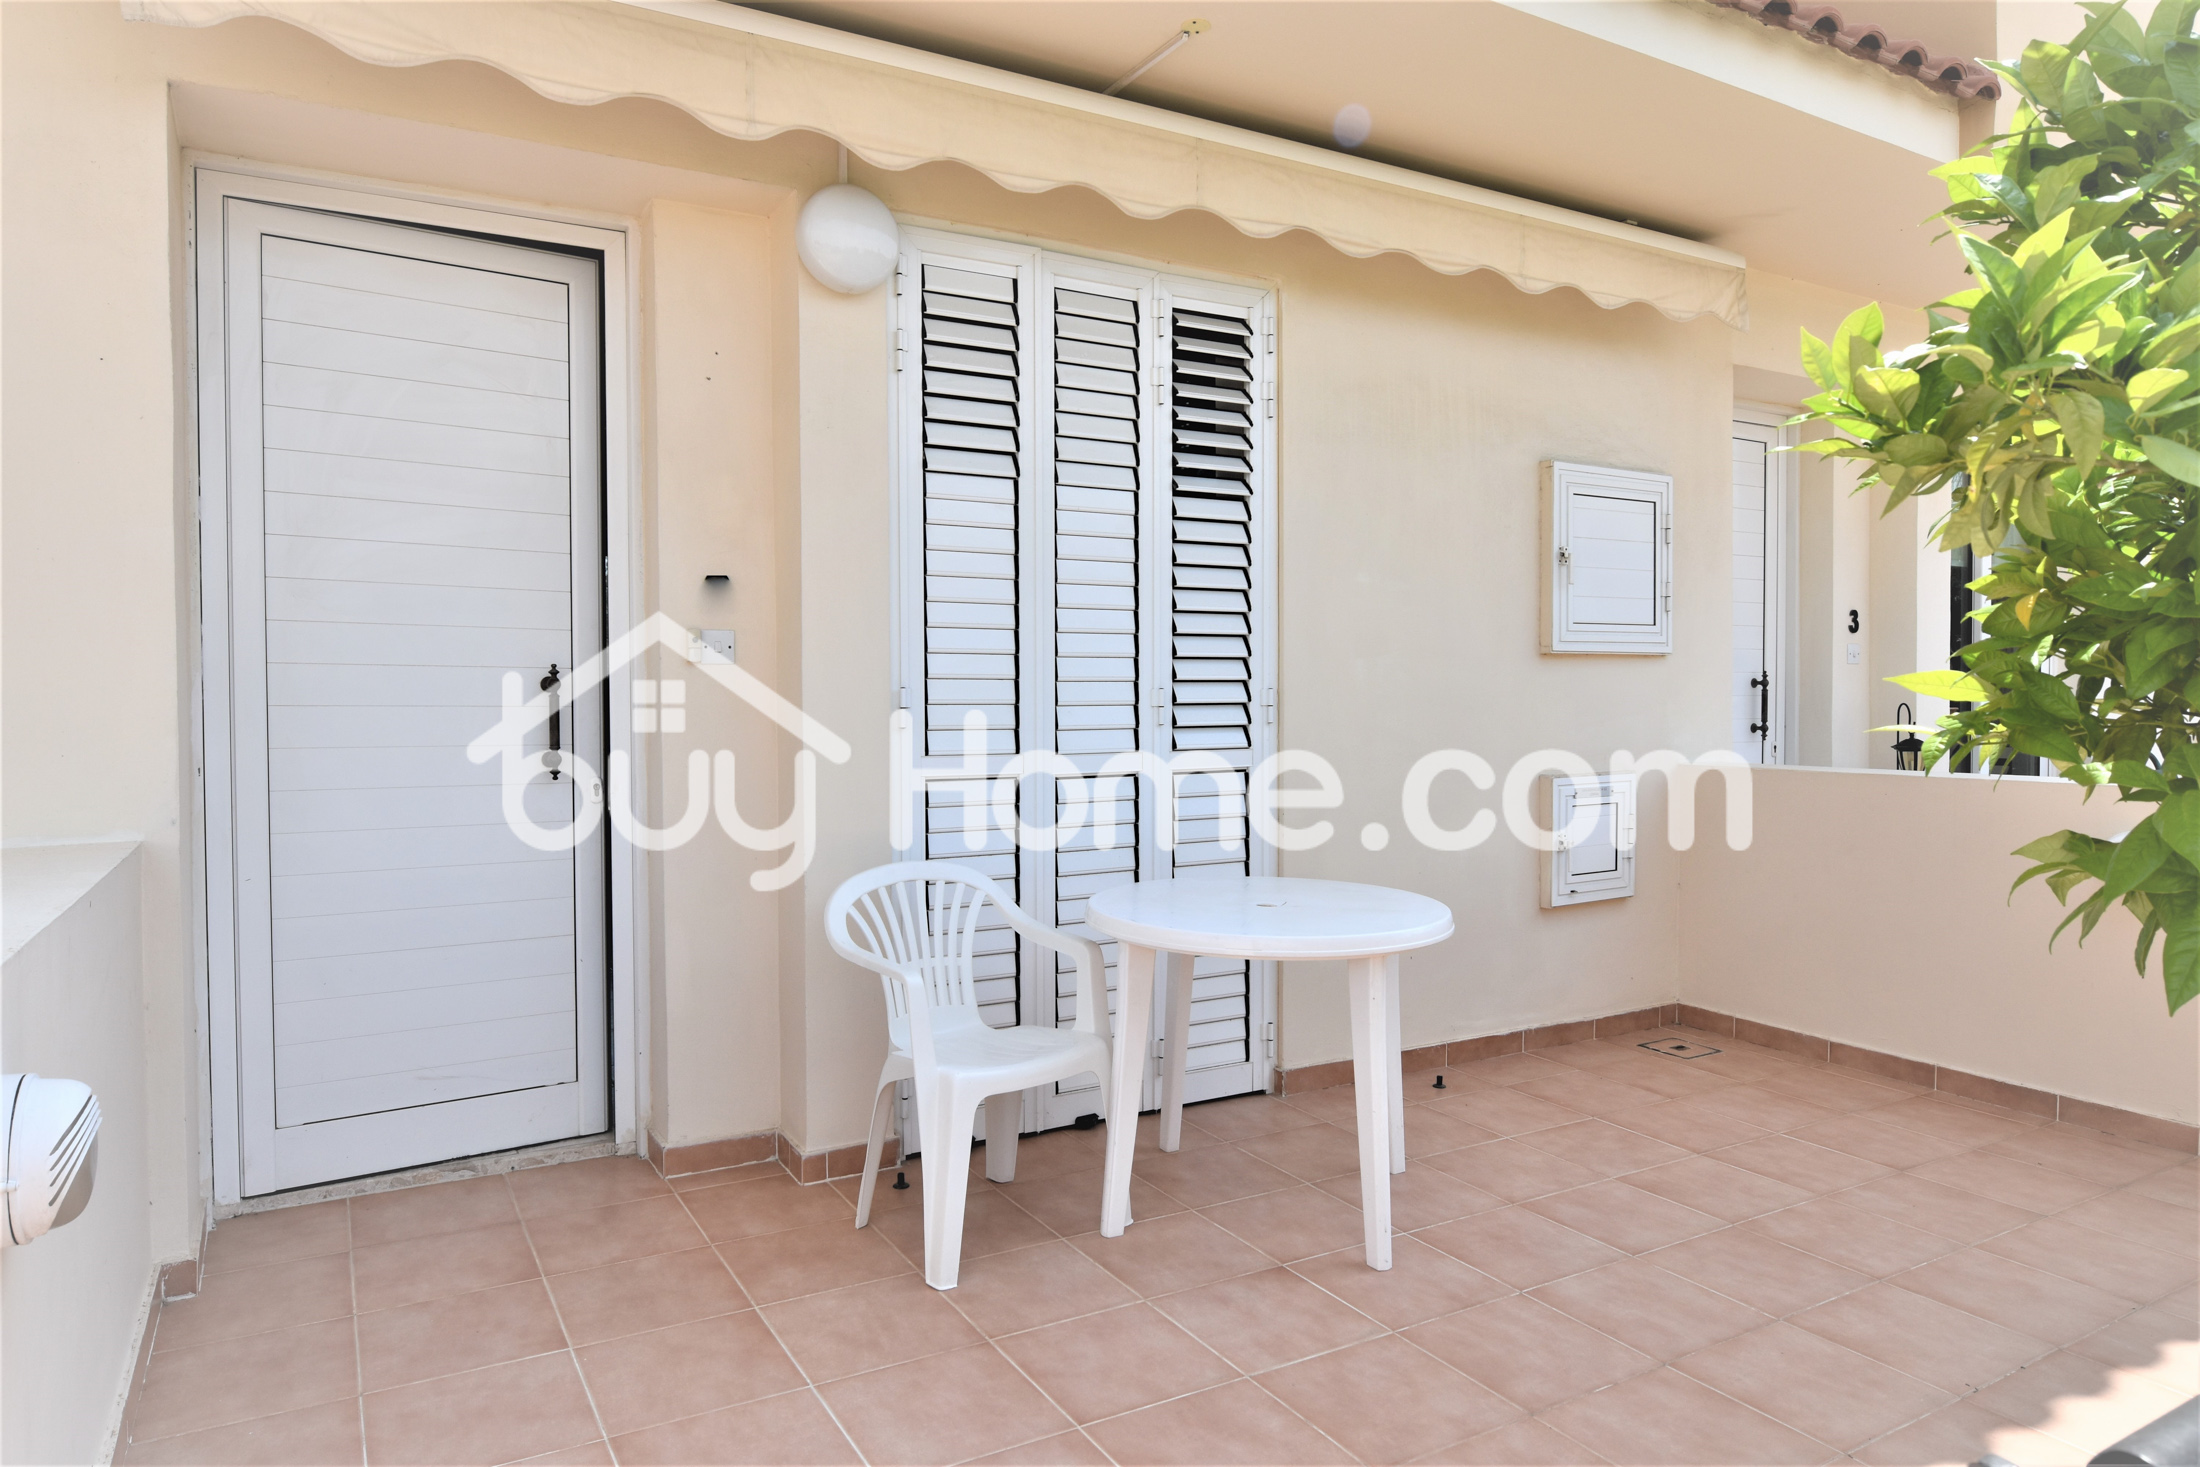 2 Bedroom Terrace House | BuyHome